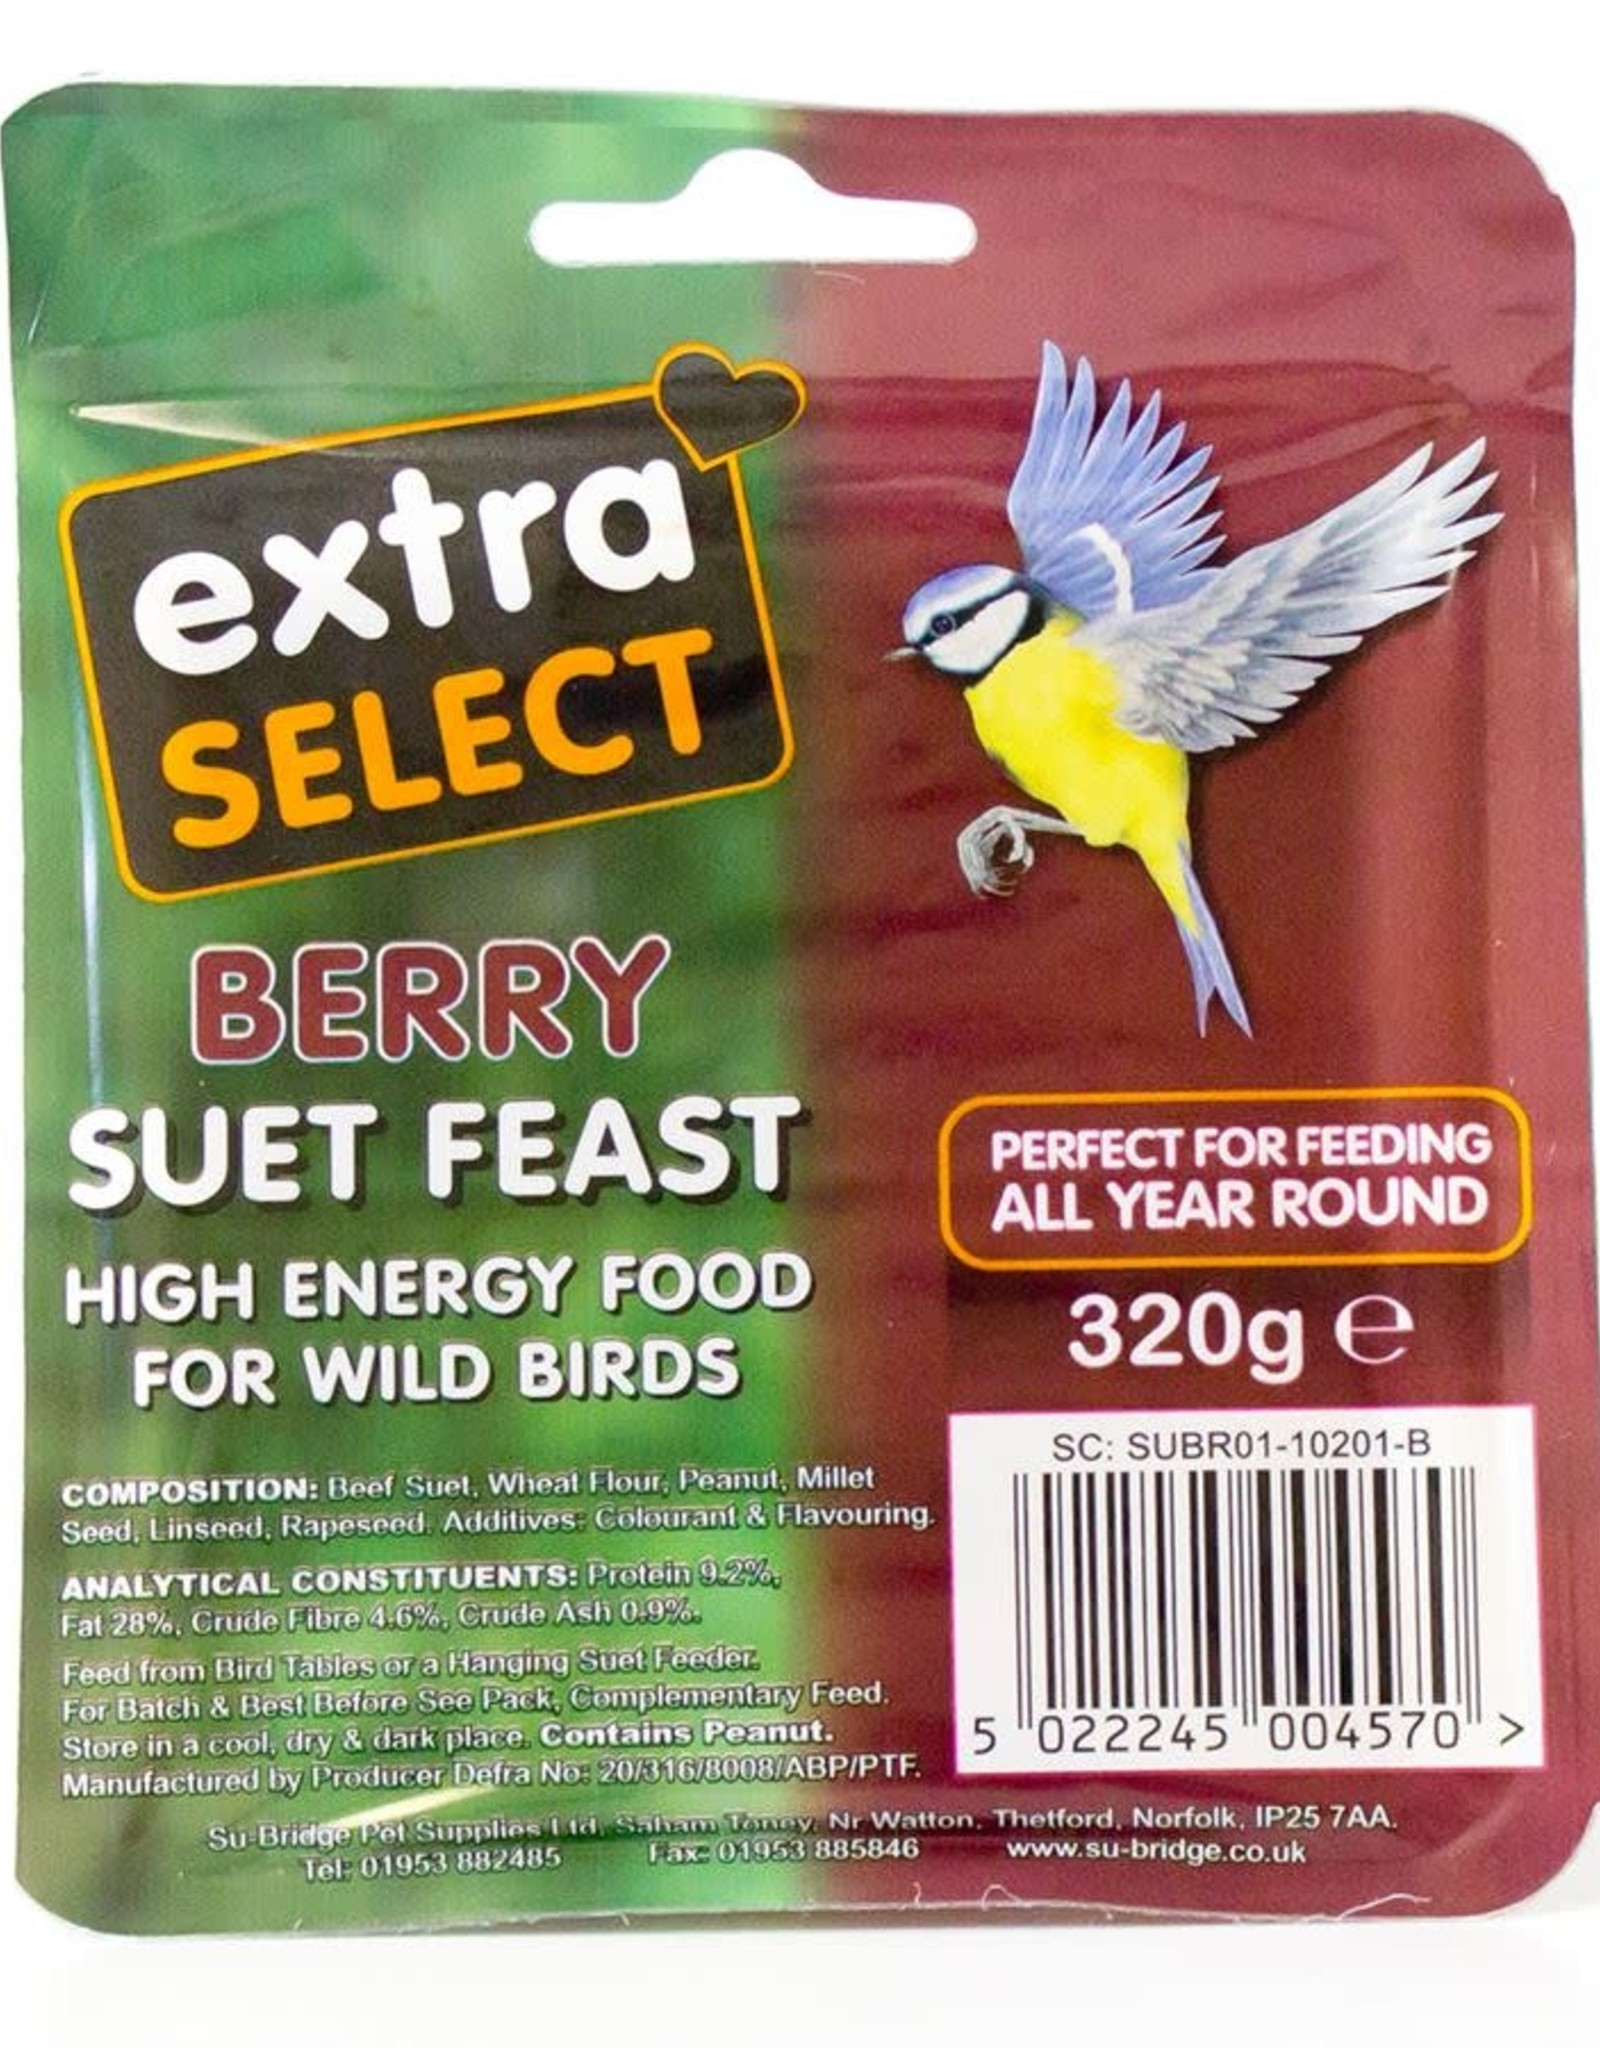 Extra Select Suet Block for Wild Birds, with Berry 320g